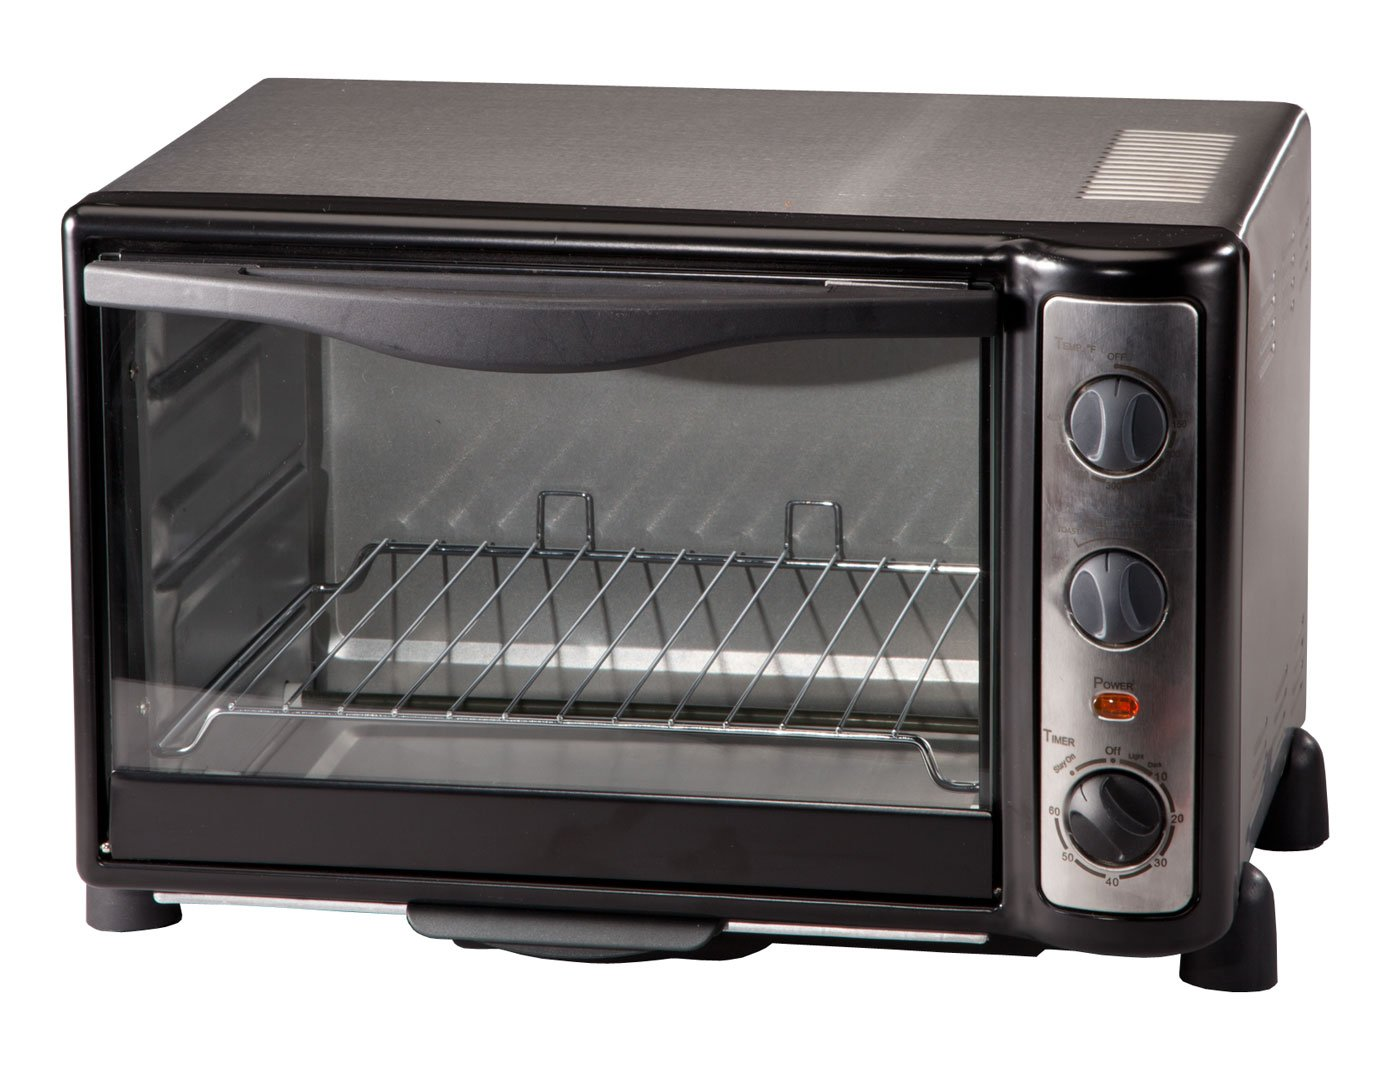 Toaster Oven By The Home Marketplace 4